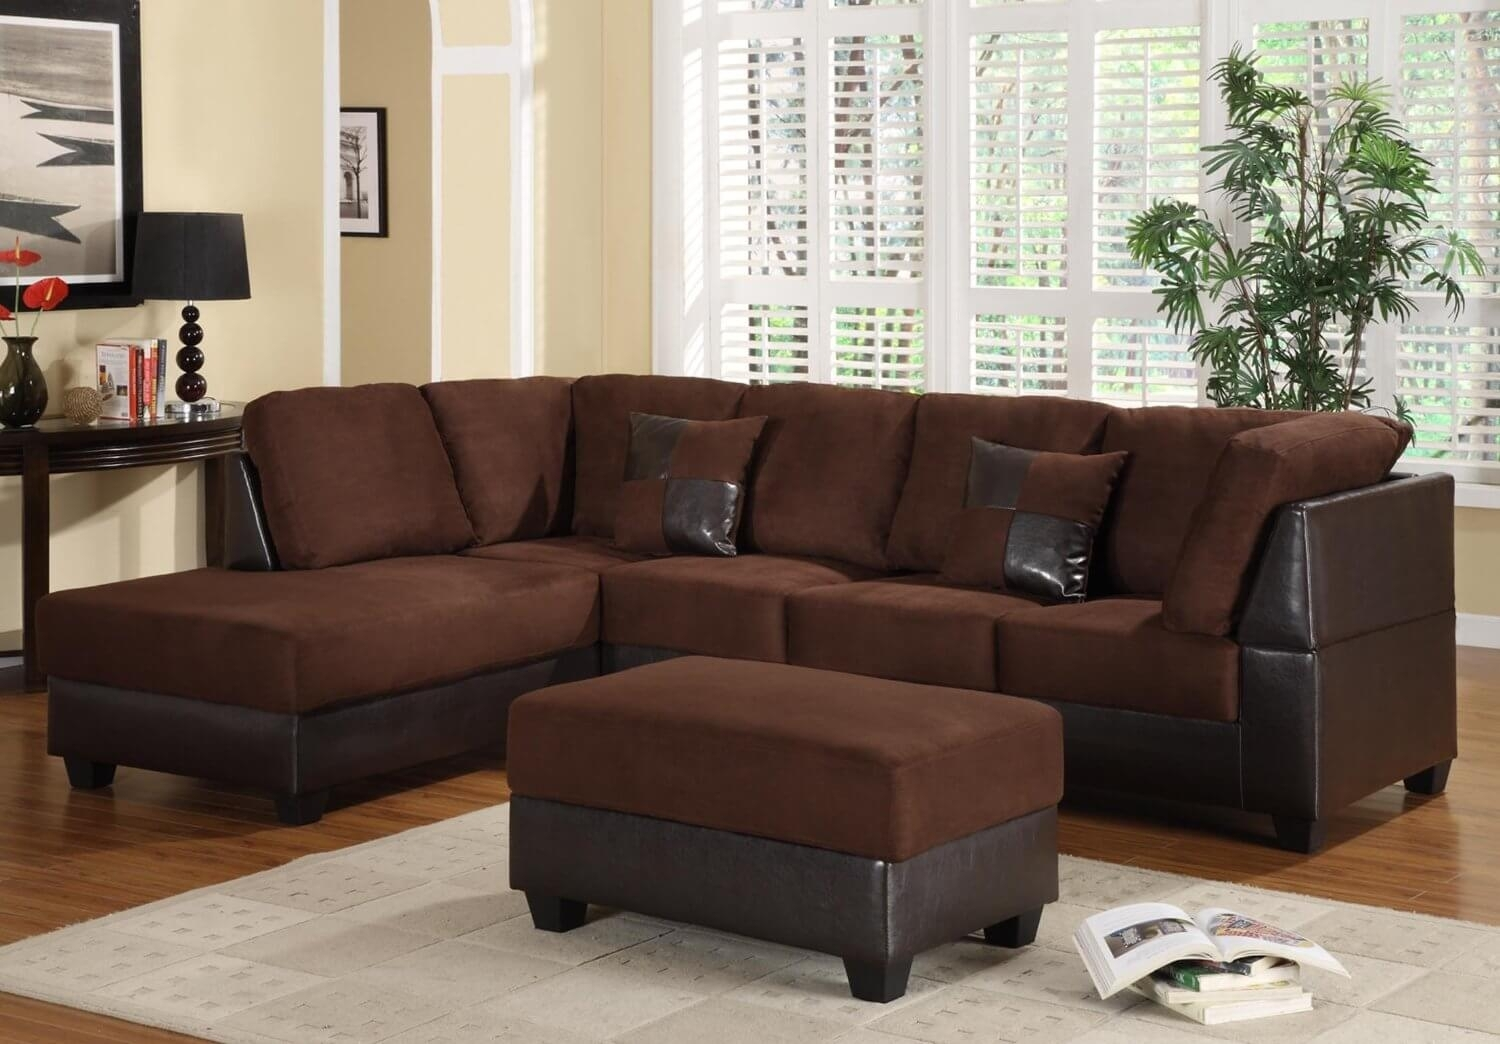 40 Cheap Sectional Sofas Under $500 For 2018 throughout Sectional Sofas Under 700